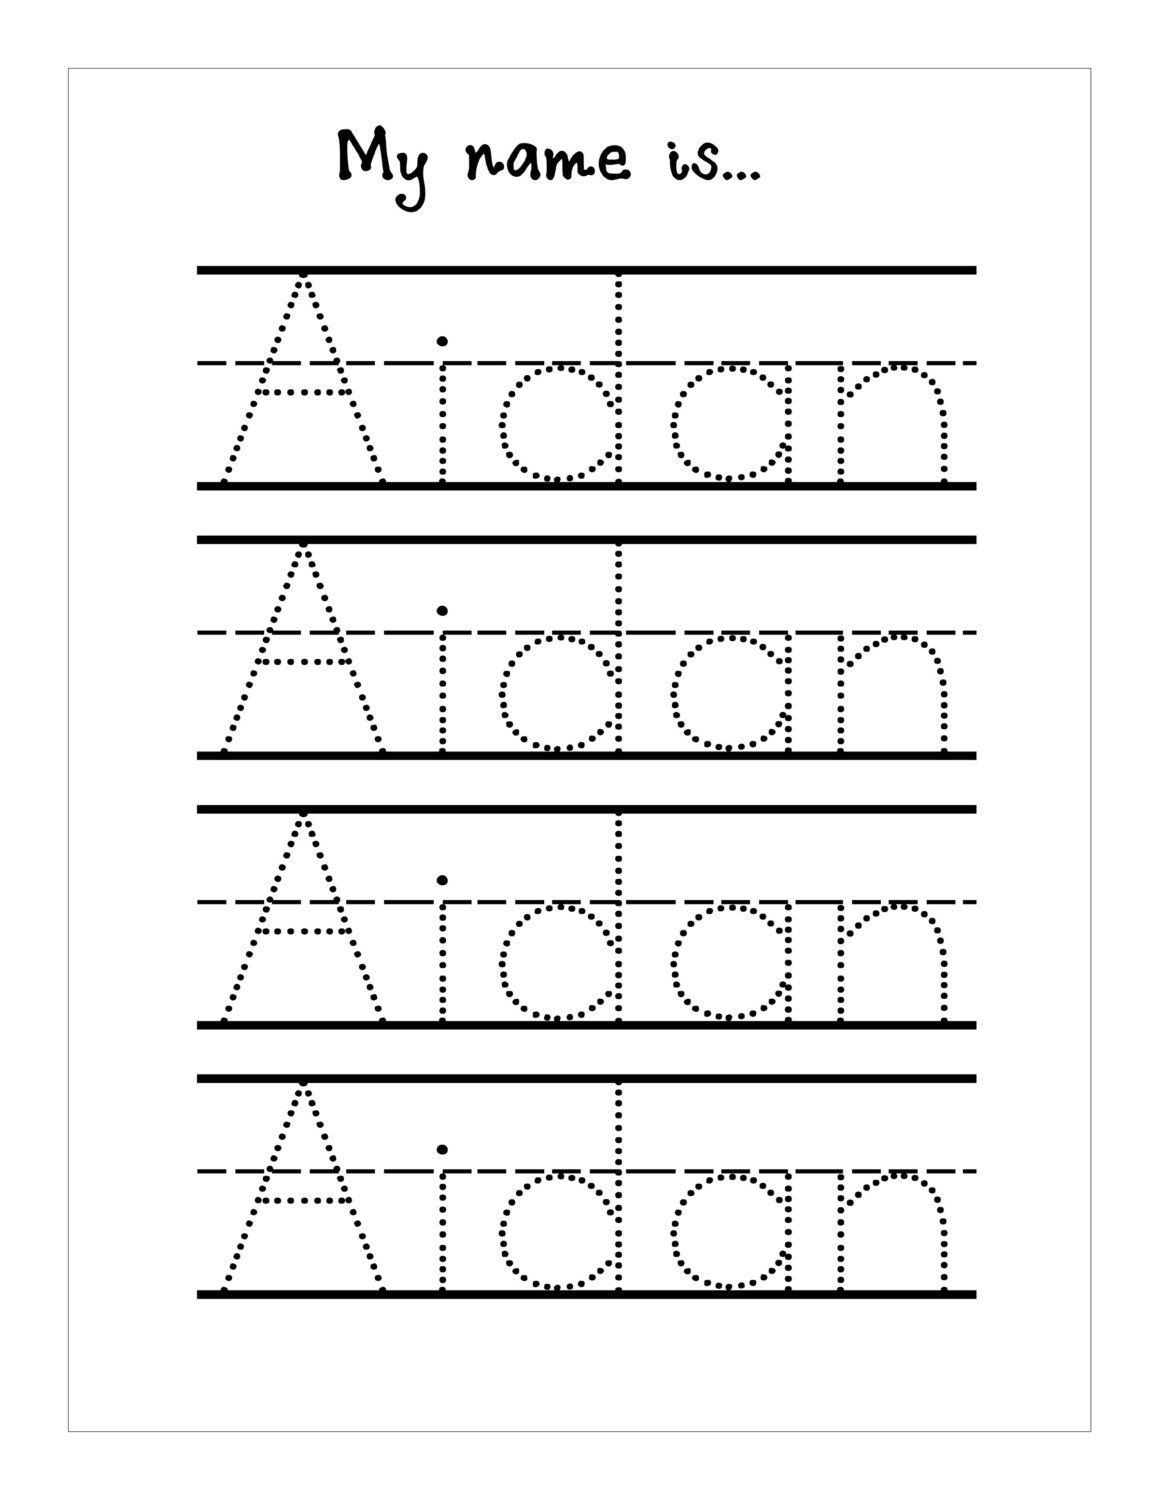 Traceable Names Worksheets   Name Tracing Worksheets within Name Tracing For Kindergarten Free